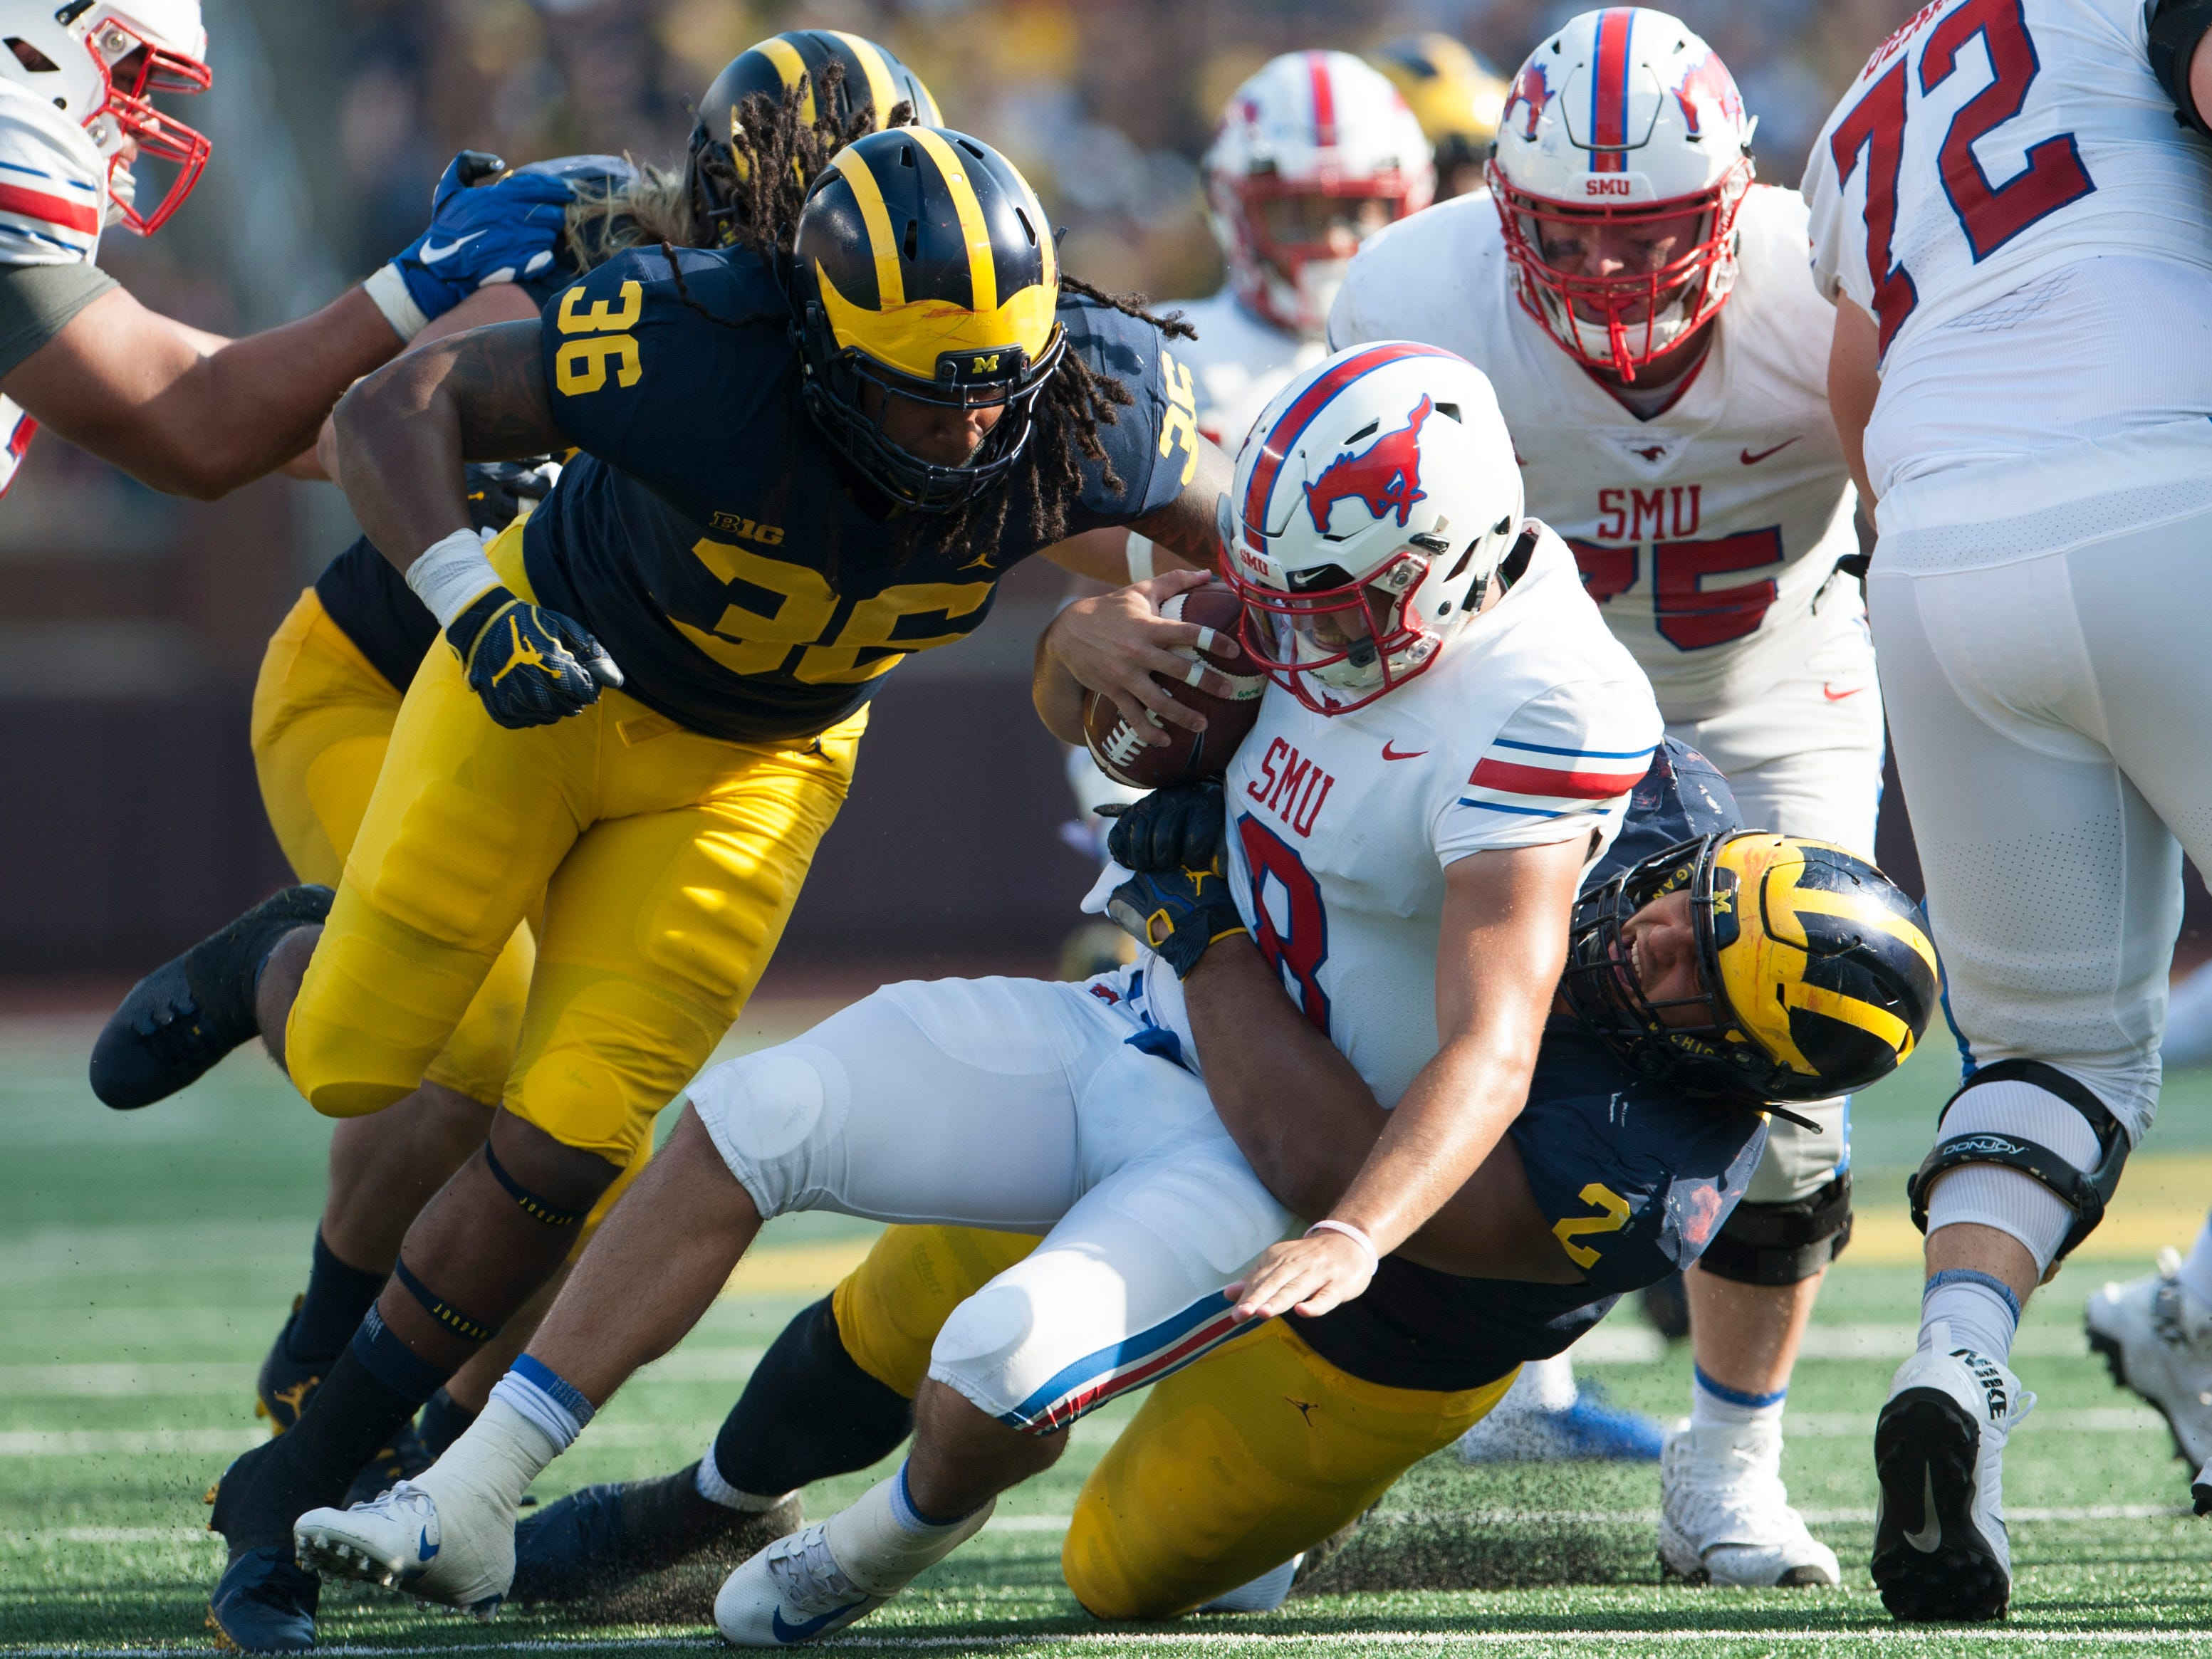 Michigan linebacker Devin Gil (36) and defensive lineman Carlo Kemp (2) sack Southern Methodist quarterback Ben Hicks in the second quarter.